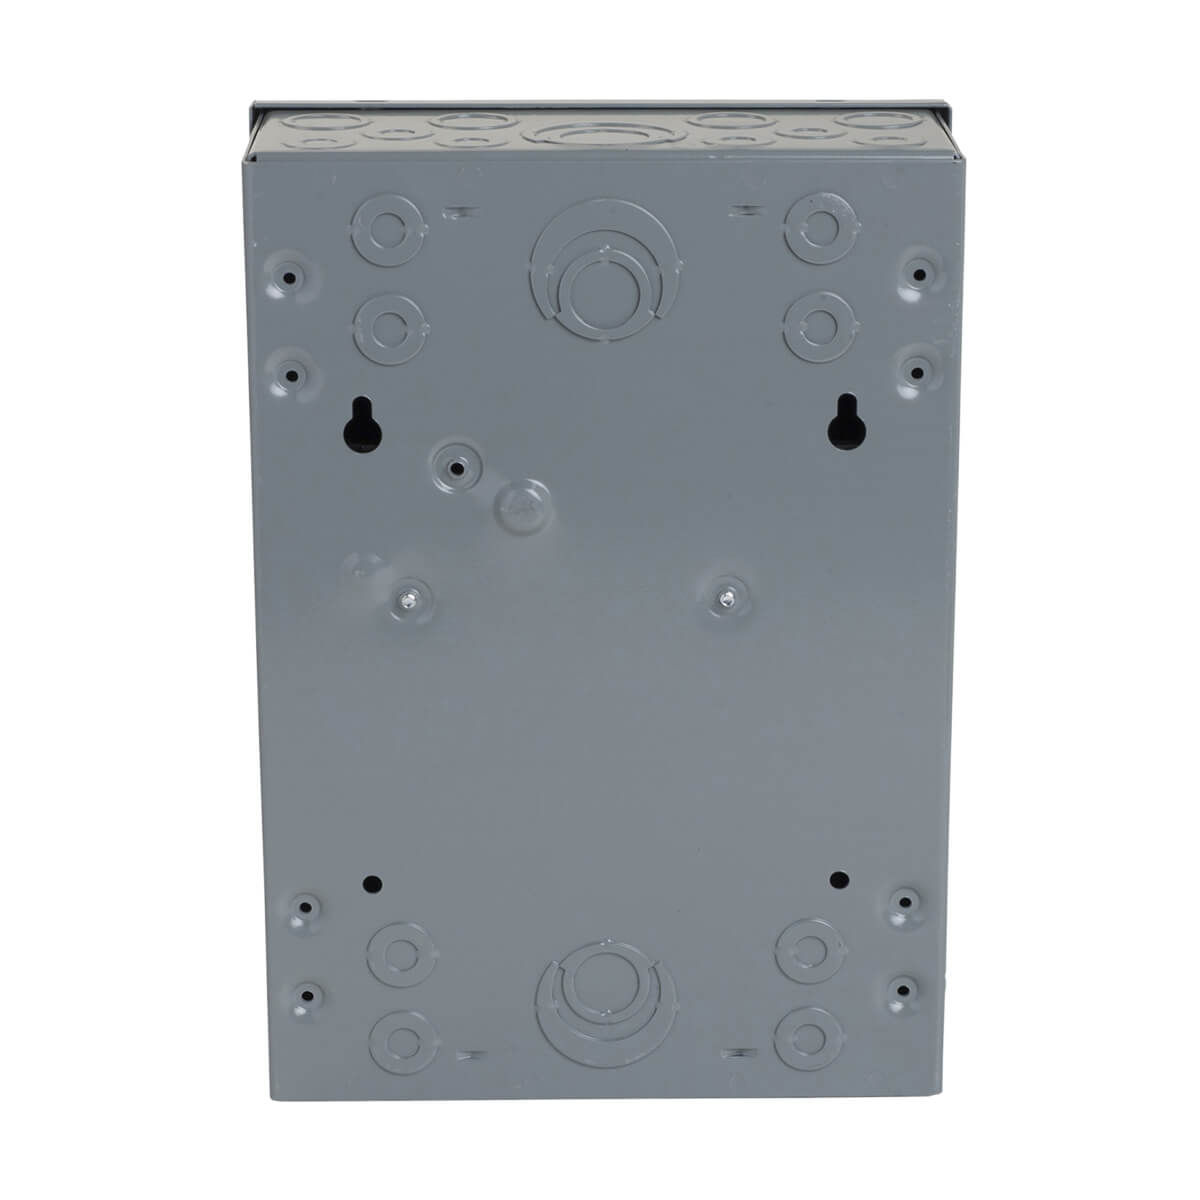 Schneider Electric Homeline Sub Panels  - 100 amp - with 6 spaces - 12 circuits max.